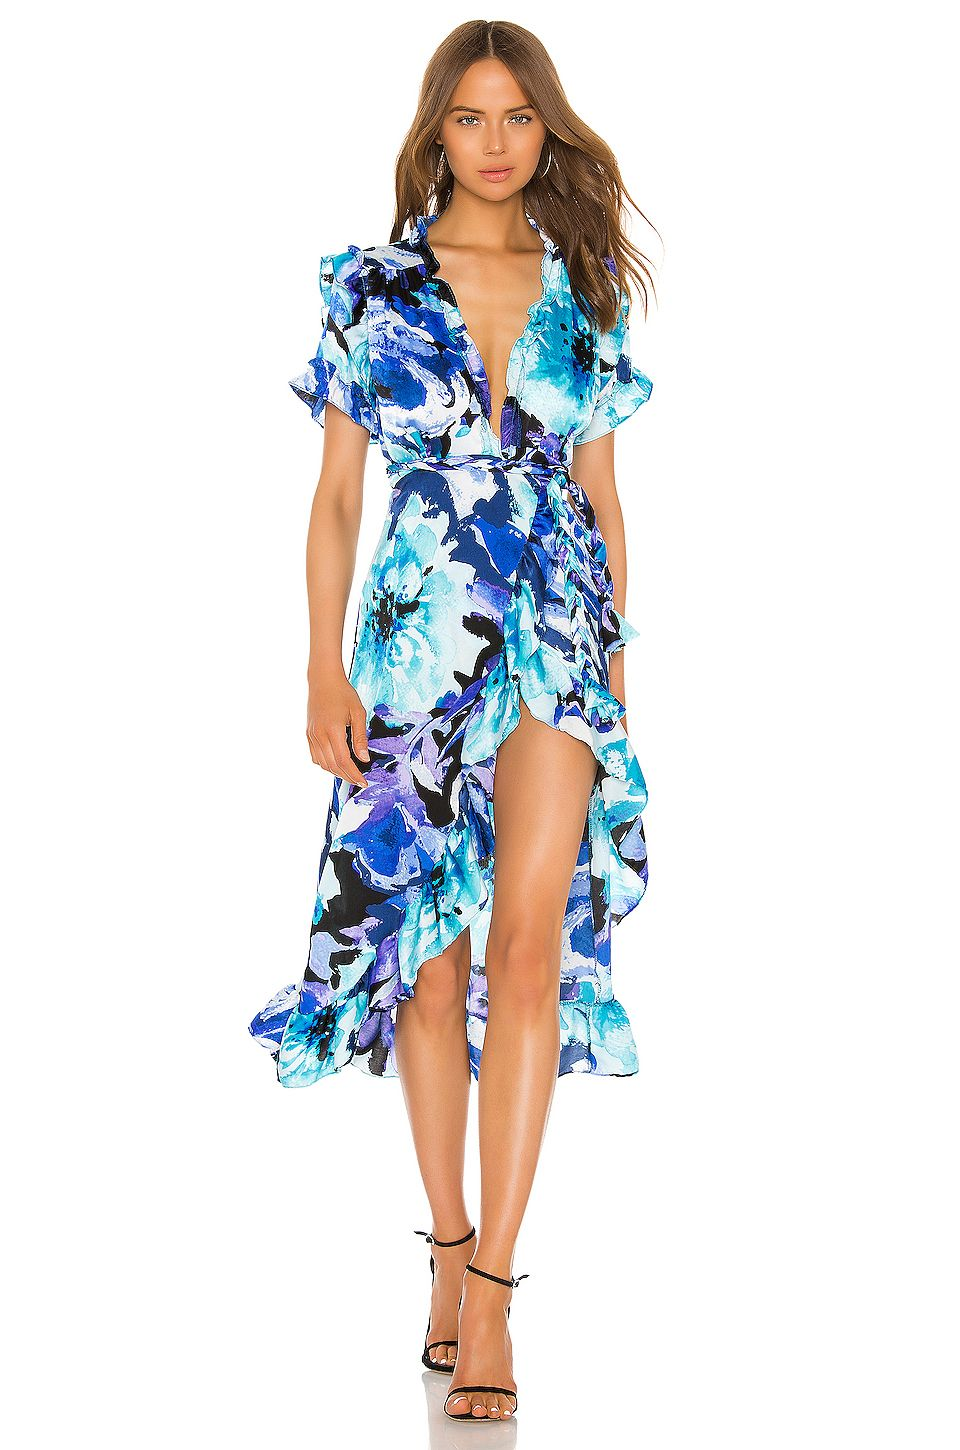 What To Wear To A Destination Wedding 15 Wedding Guest Dresses I M Obsessed With For 2019 2020 Je In 2020 Beach Wedding Guest Dress Guest Dresses Fabulous Dresses [ 1450 x 960 Pixel ]